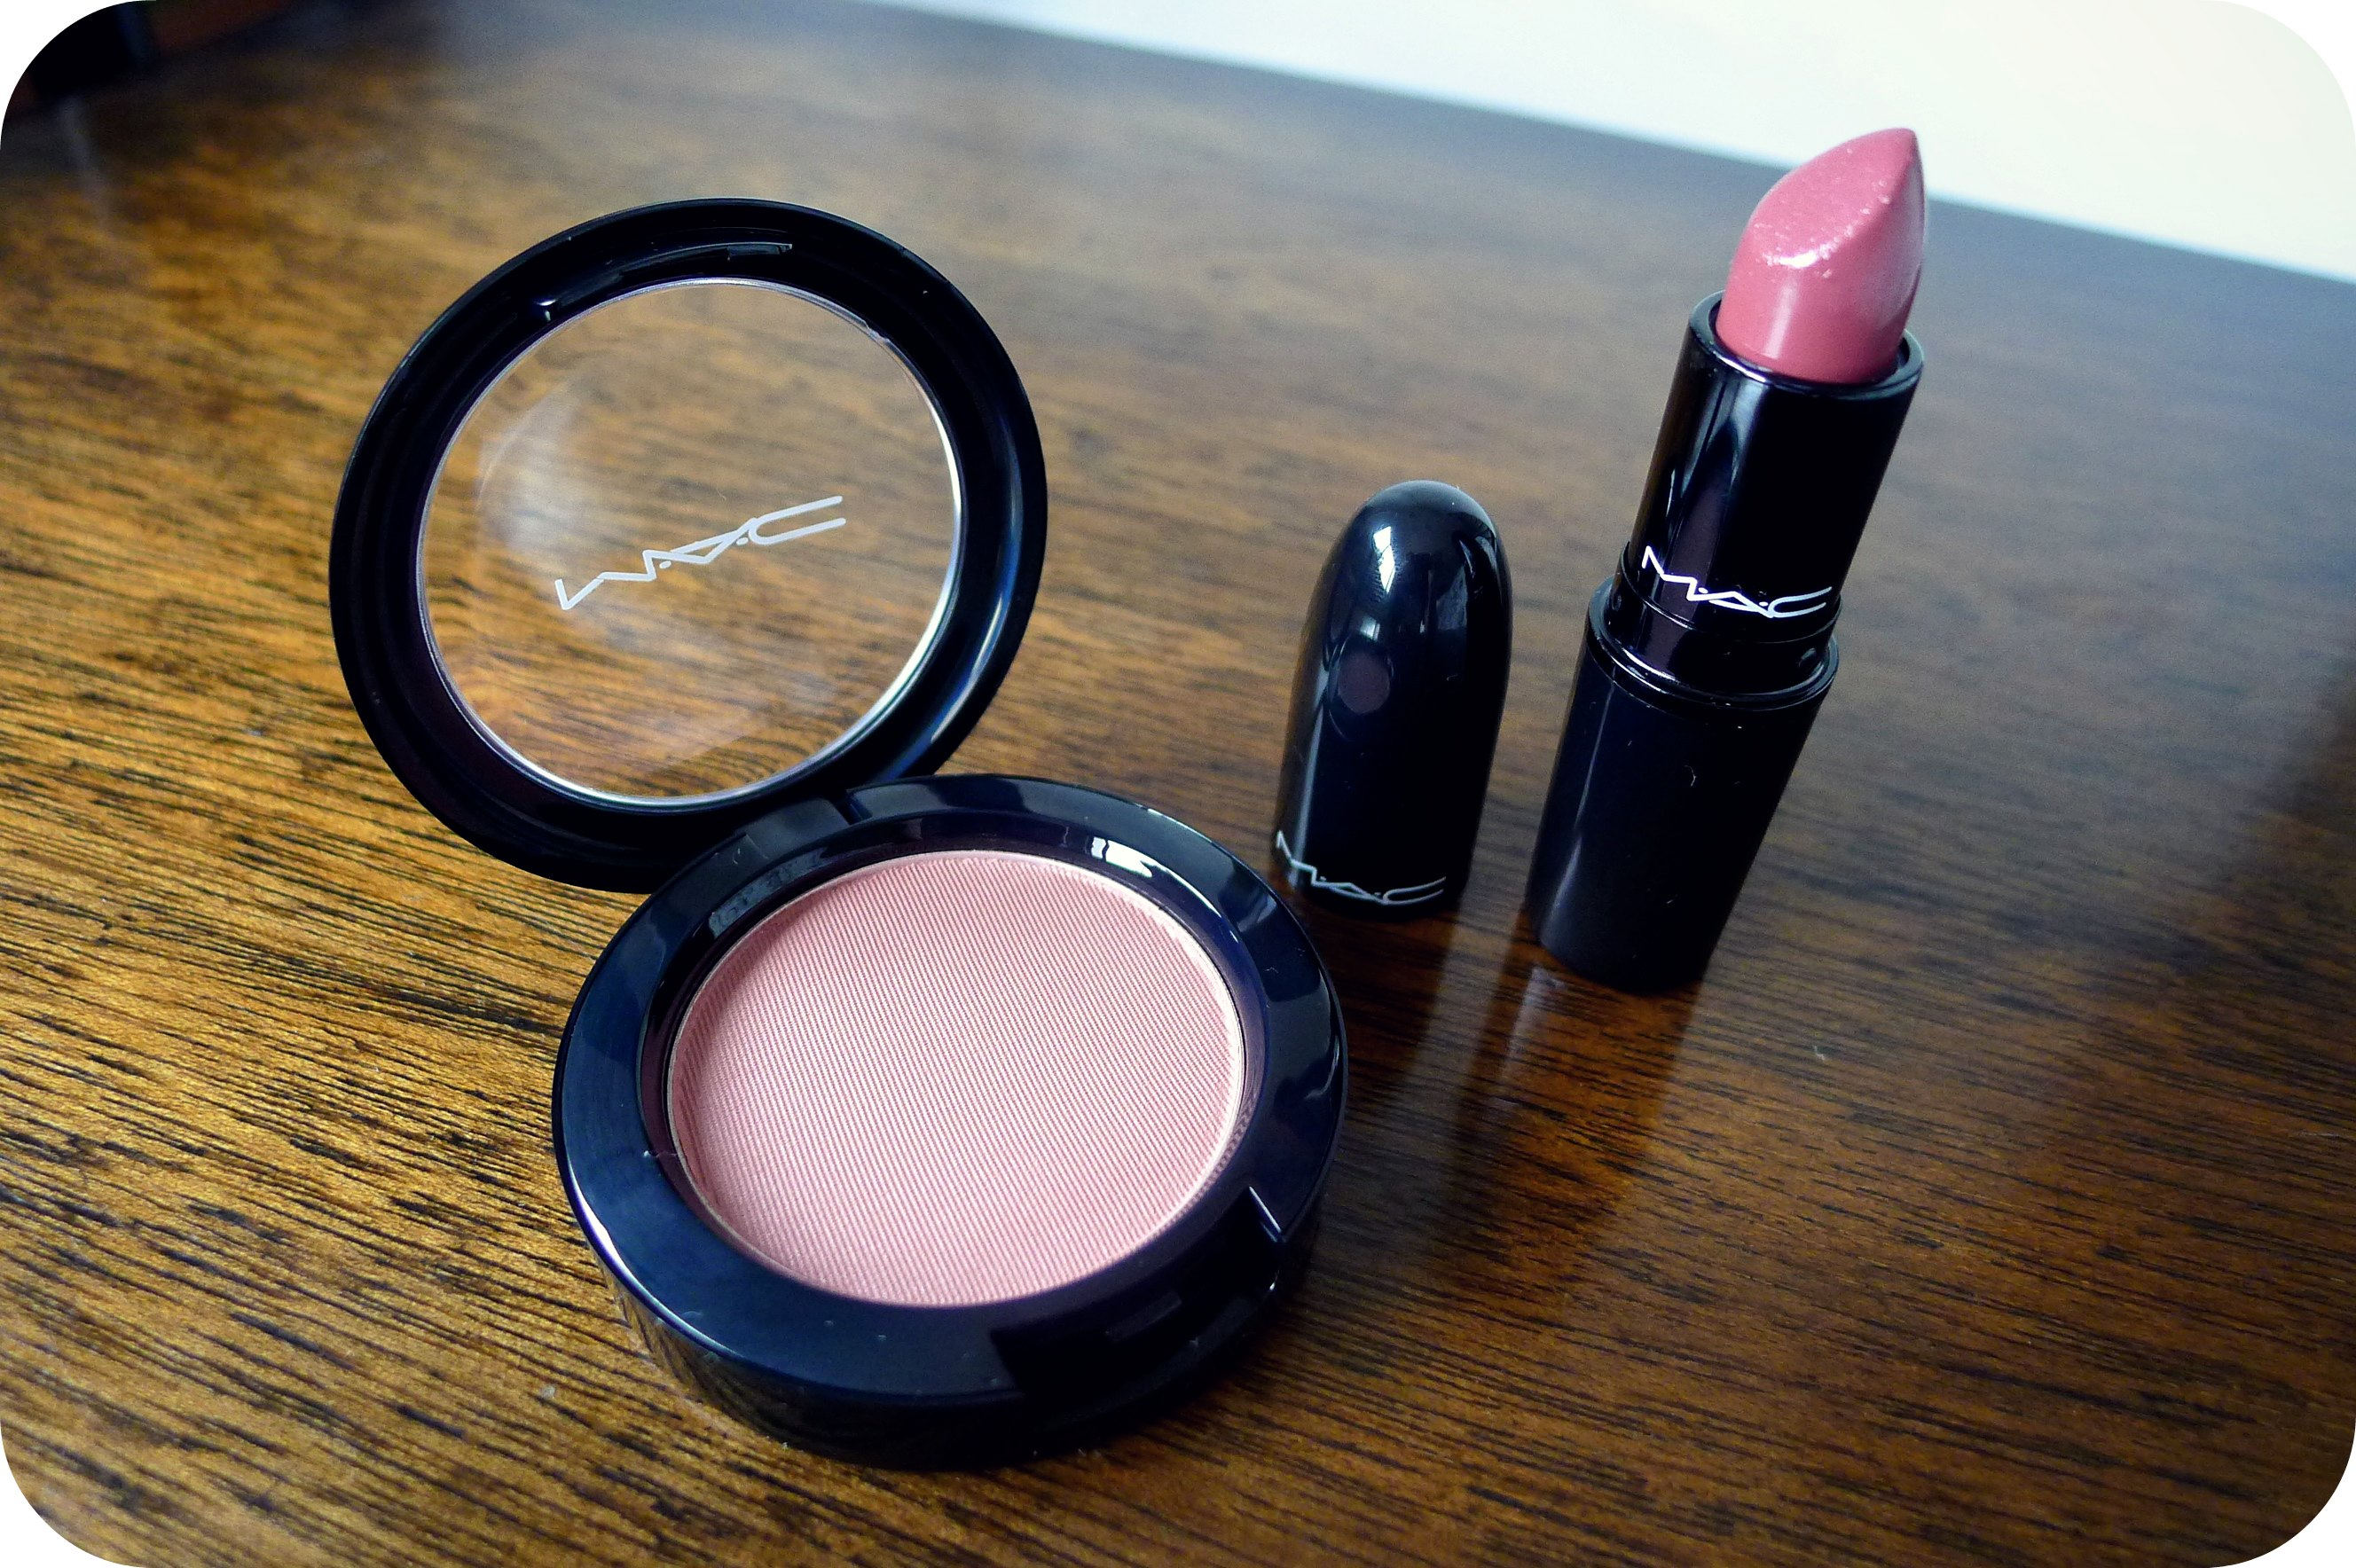 MAC Holiday Collection 2012: Glamourdaze, Small Vanity, and Lavish ...